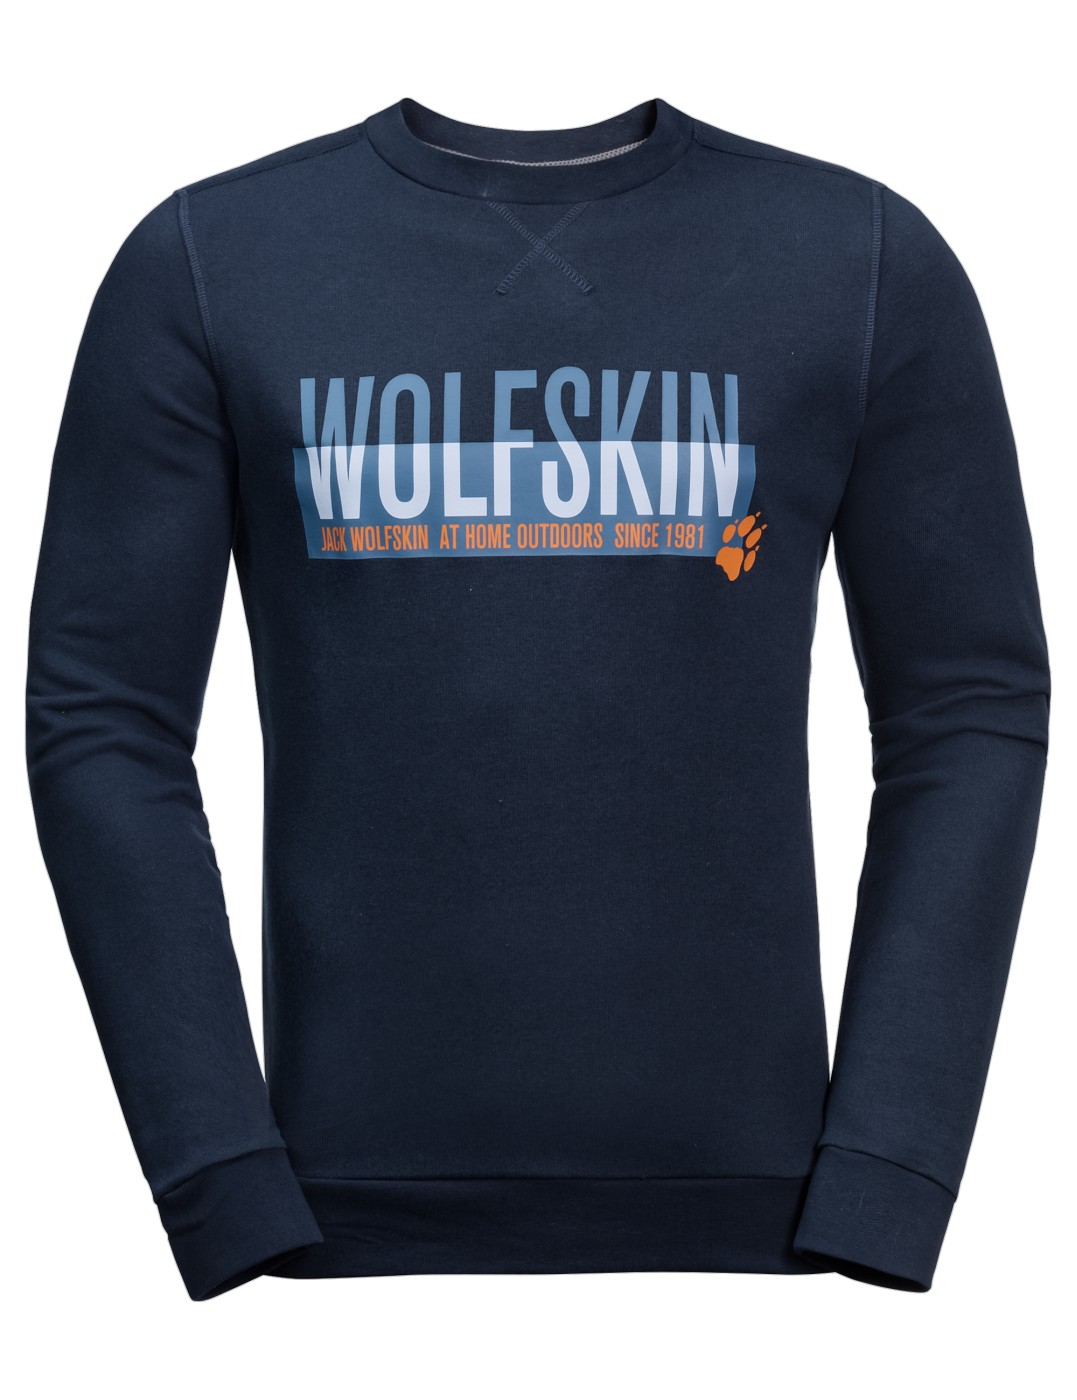 Jack Wolfskin Slogan Sweatshirt M night blue - en